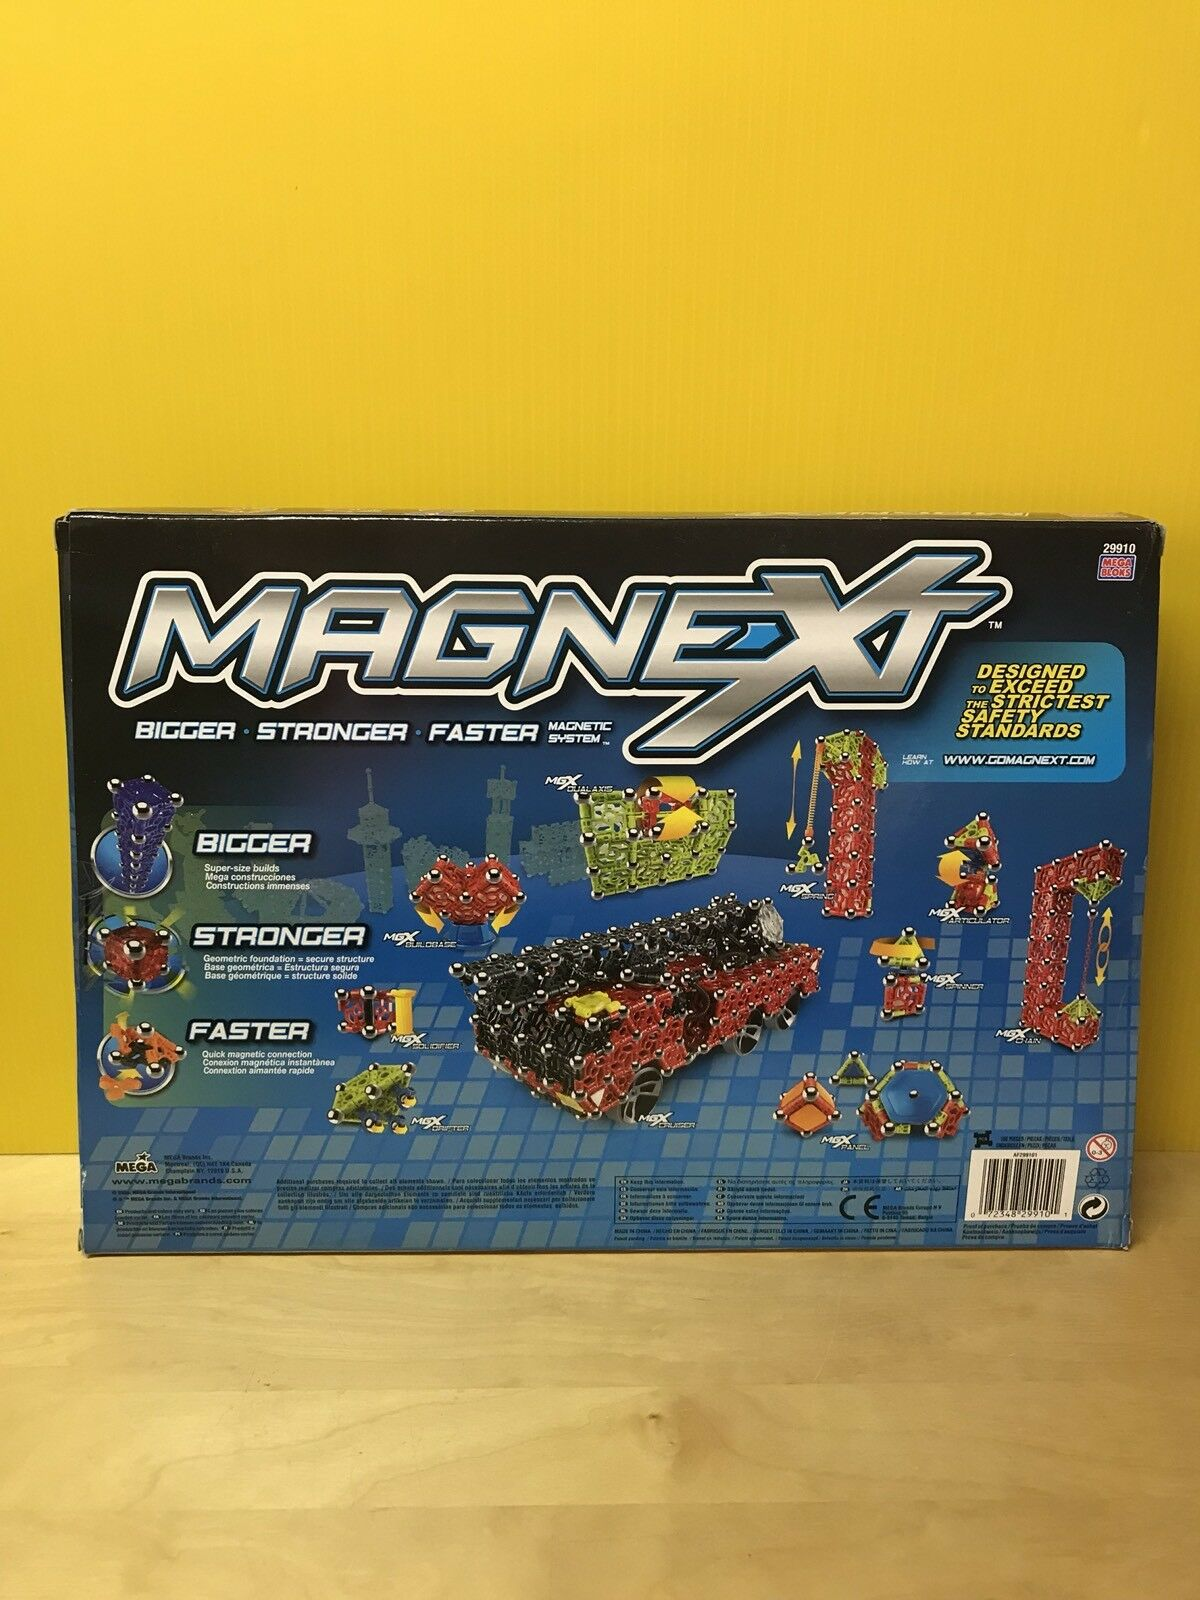 MEGA BLOKS Magnext Set Set Set 29910 Special Parts Ultimate 1.1 Set 100 Pcs Magnets NEW a6dacc